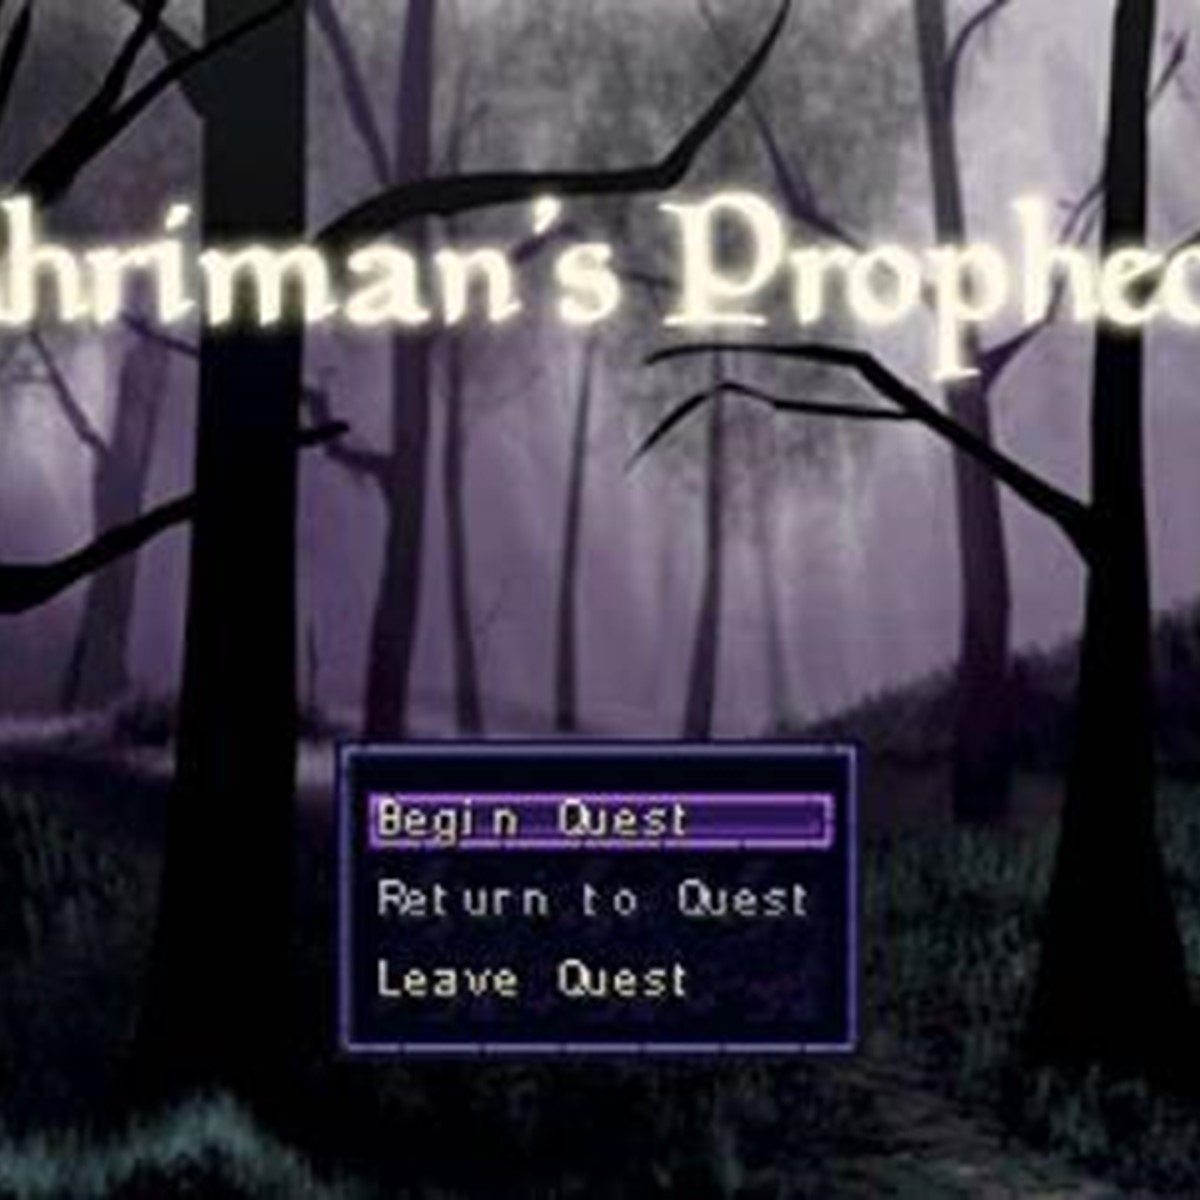 Ahriman's Prophecy Alternatives and Similar Games